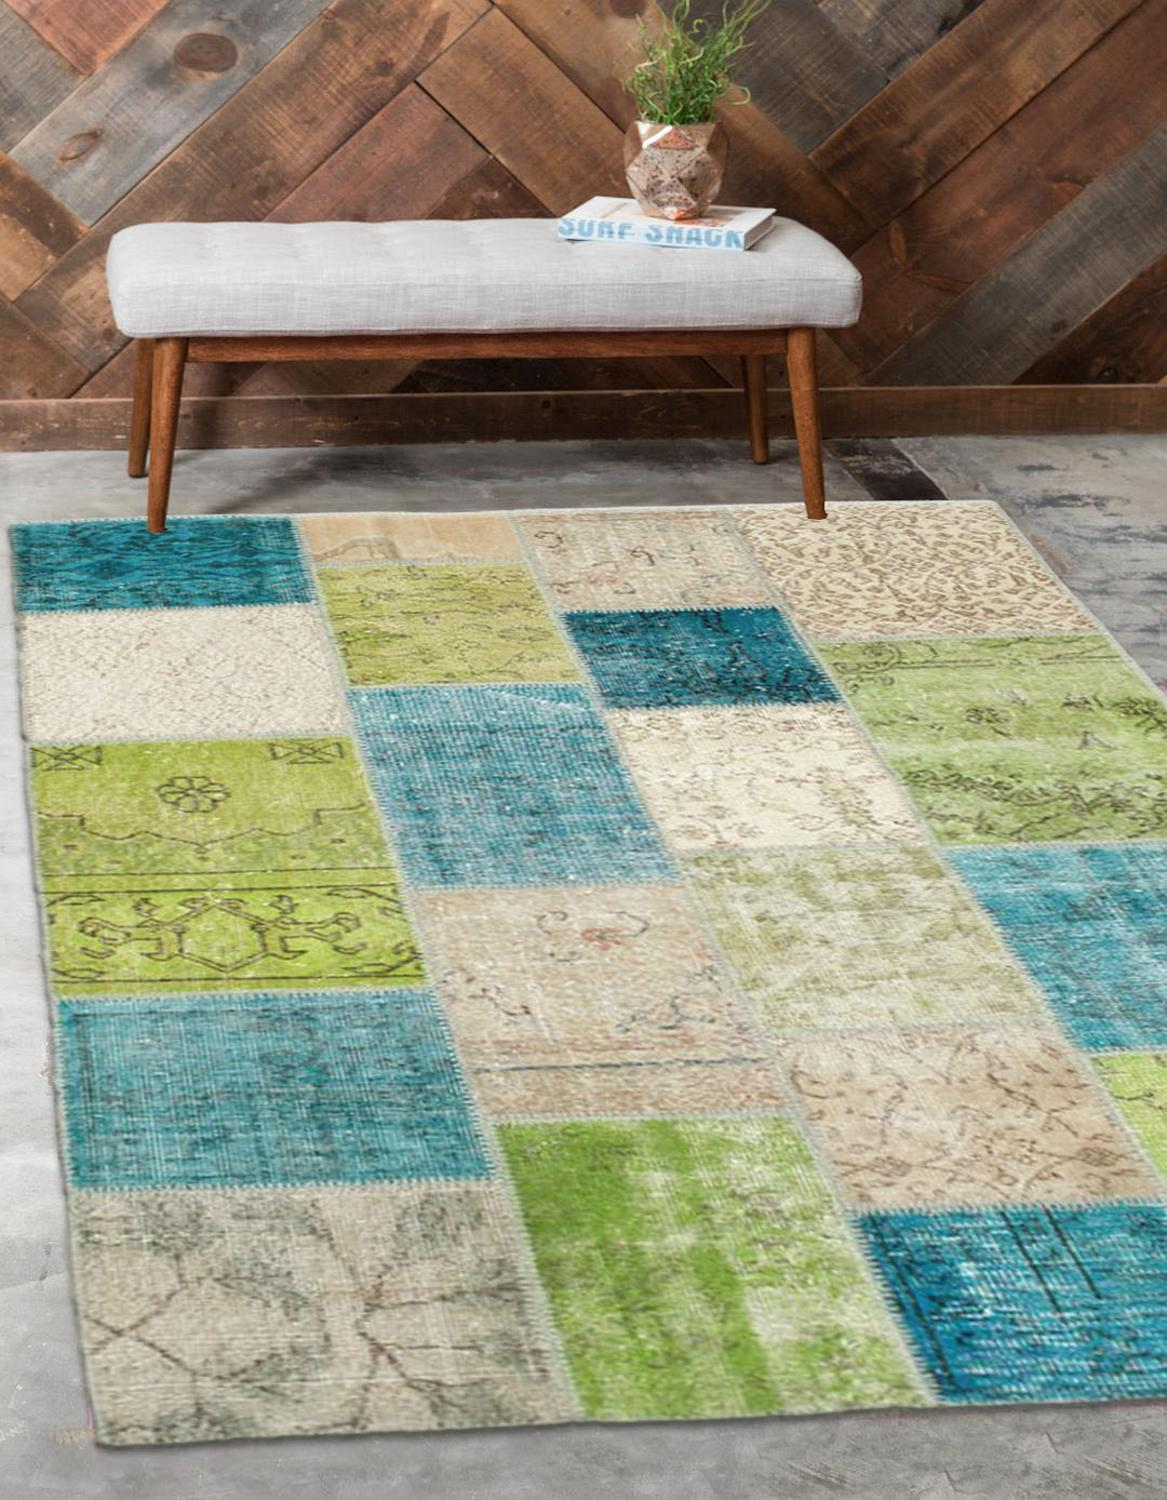 Else Green Blue Beige Anatolian Patchwork Rug Turkish Handmade Organic Area Rug Decorative Home Decor Wool Patchwork Rug Carpet